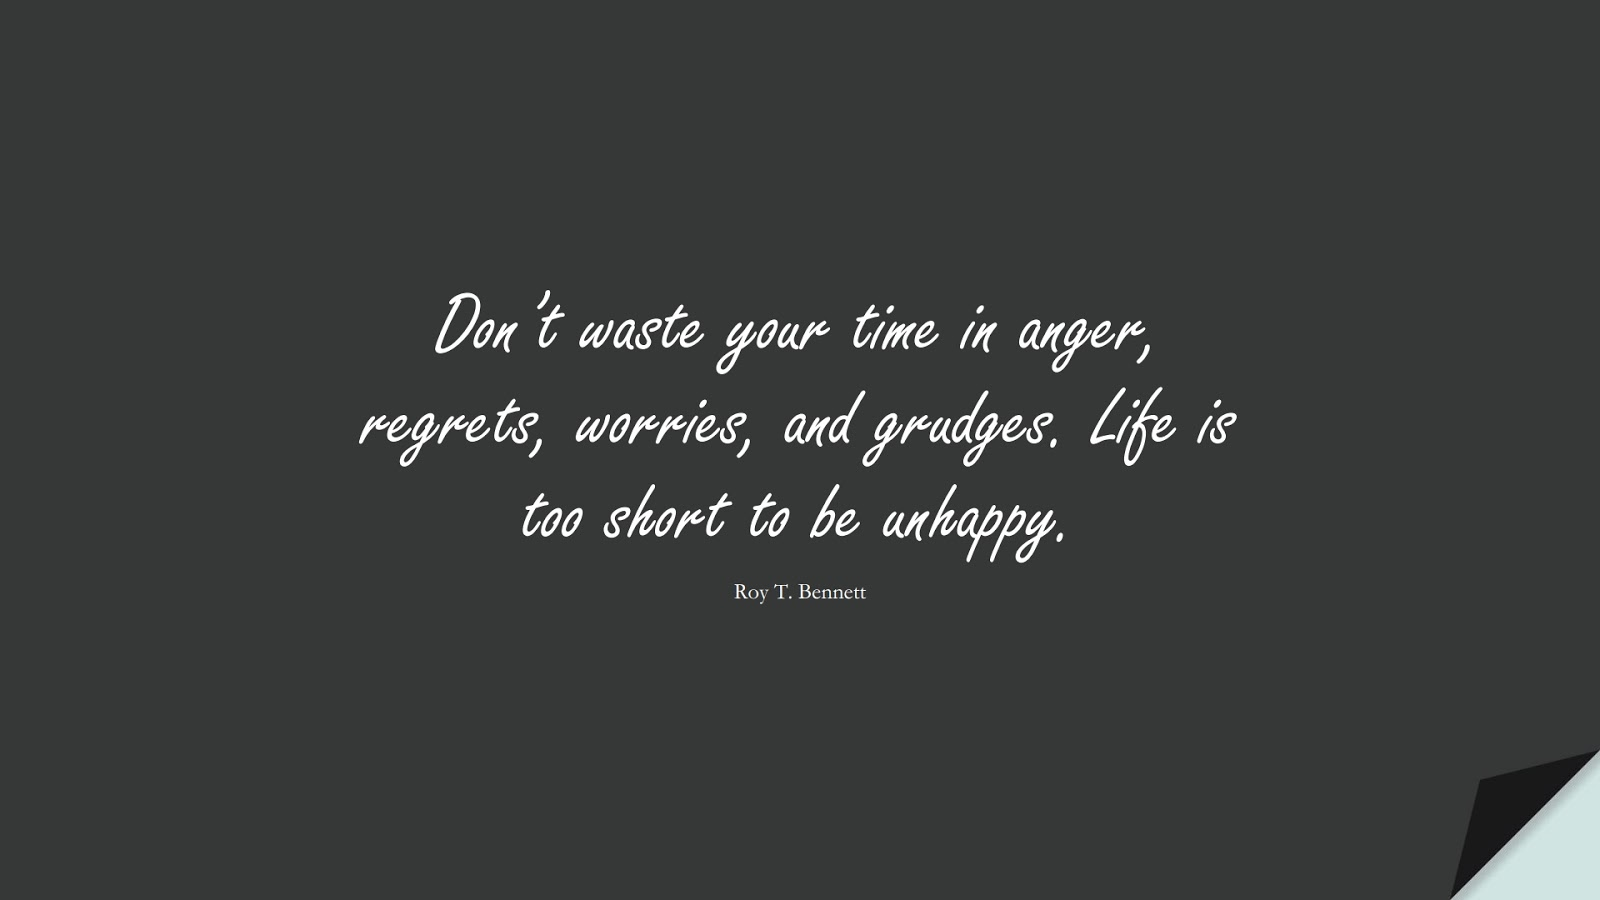 Don't waste your time in anger, regrets, worries, and grudges. Life is too short to be unhappy. (Roy T. Bennett);  #HappinessQuotes